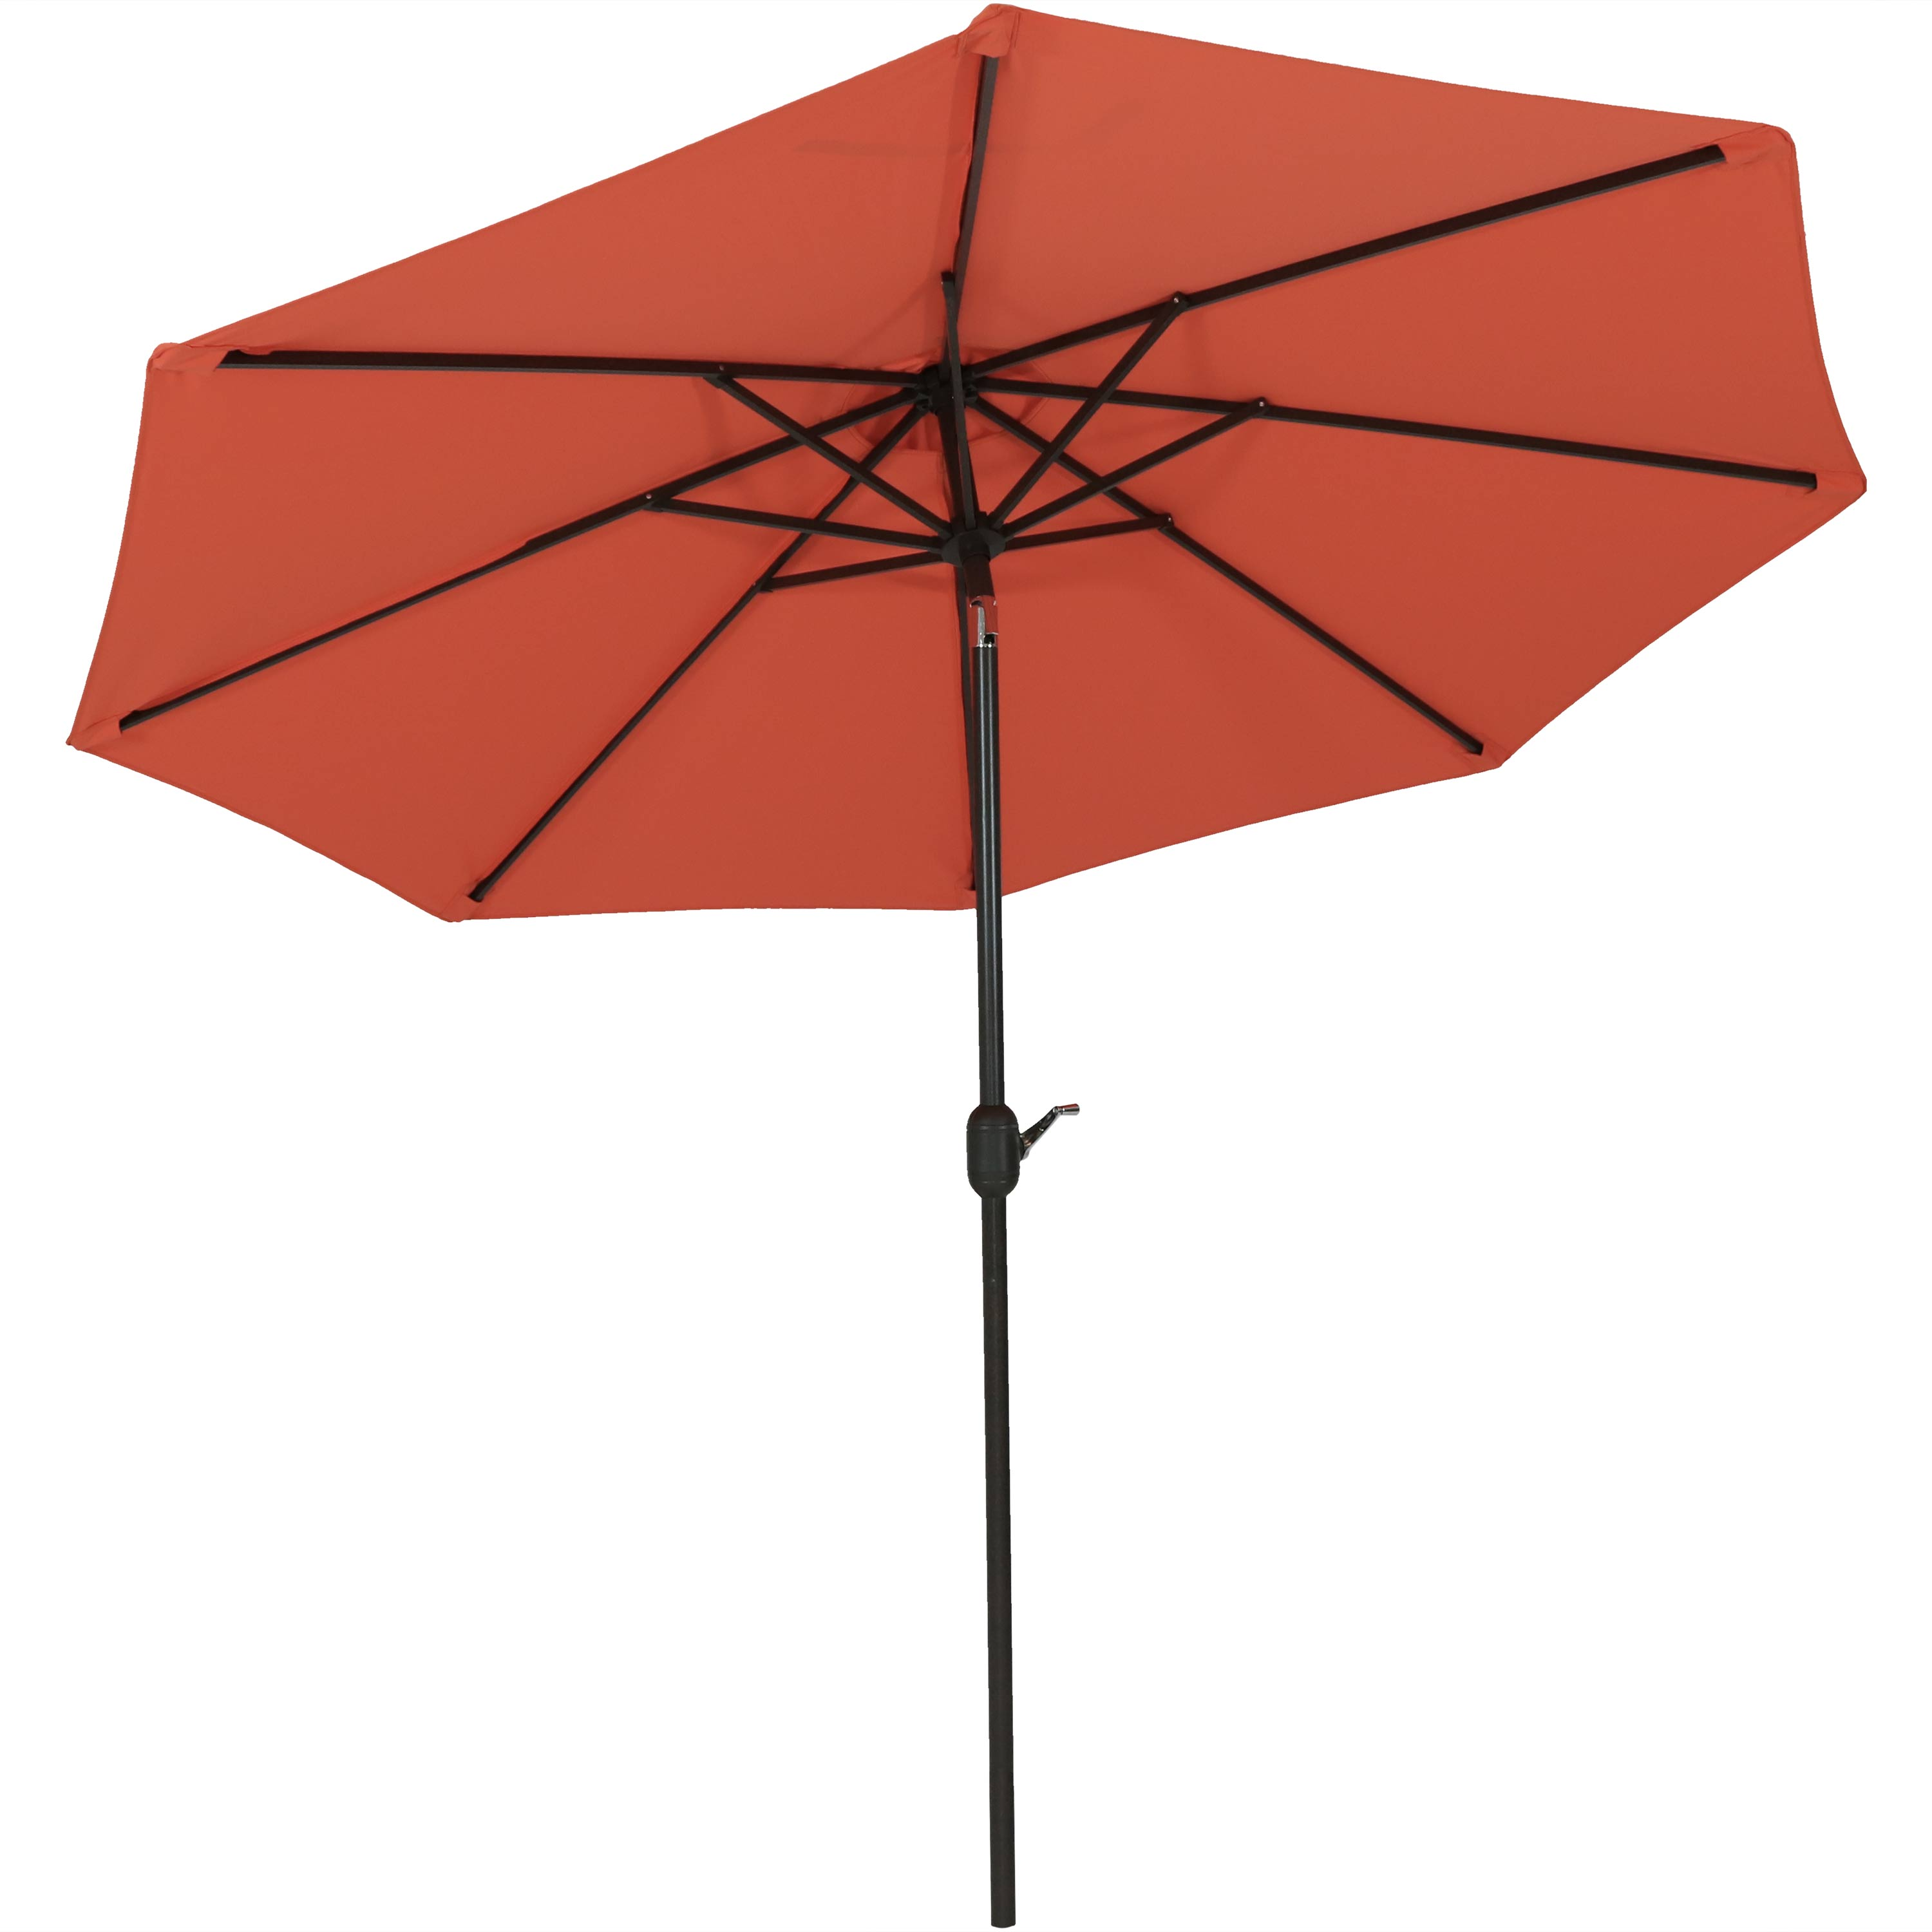 Patio Umbrella Fade Umbrella Canopy Auto Tilt Crank Orange Photo